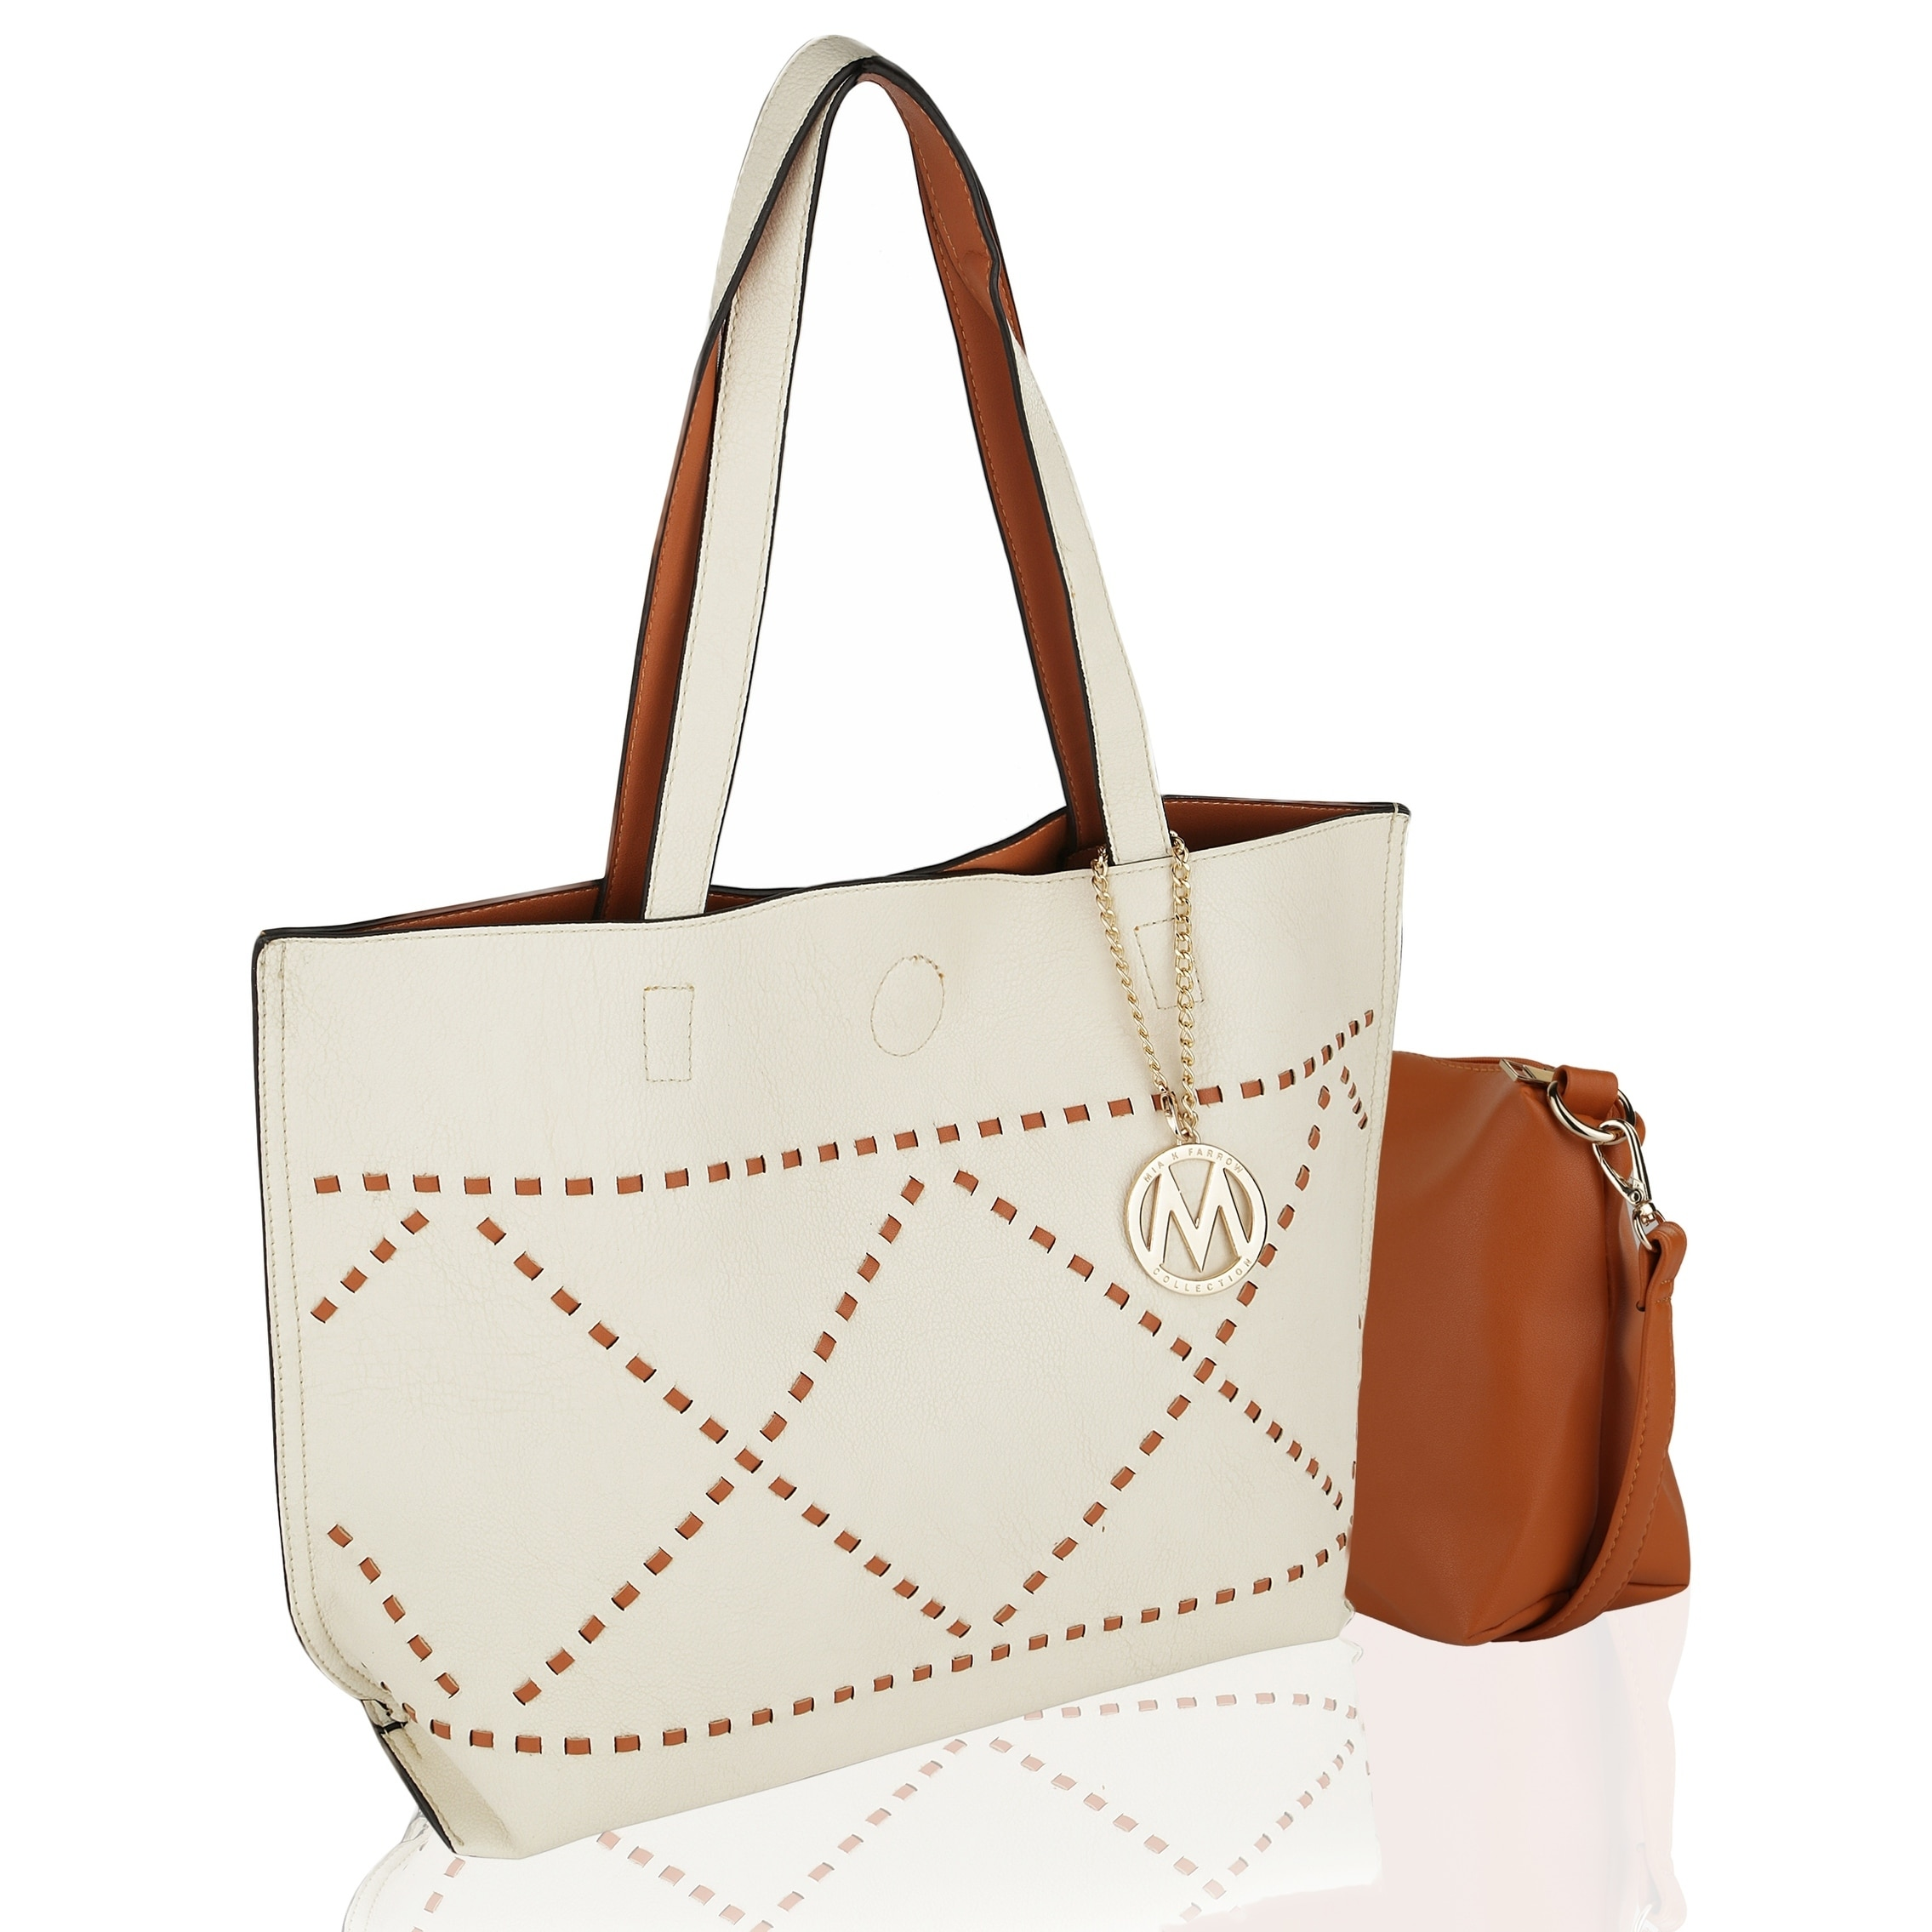 8b8d1c30cfc0 Shop MKF Collection by Mia K Farrow Delly Tote Shoulder Bag - On Sale - Free  Shipping On Orders Over $45 - Overstock - 20978986